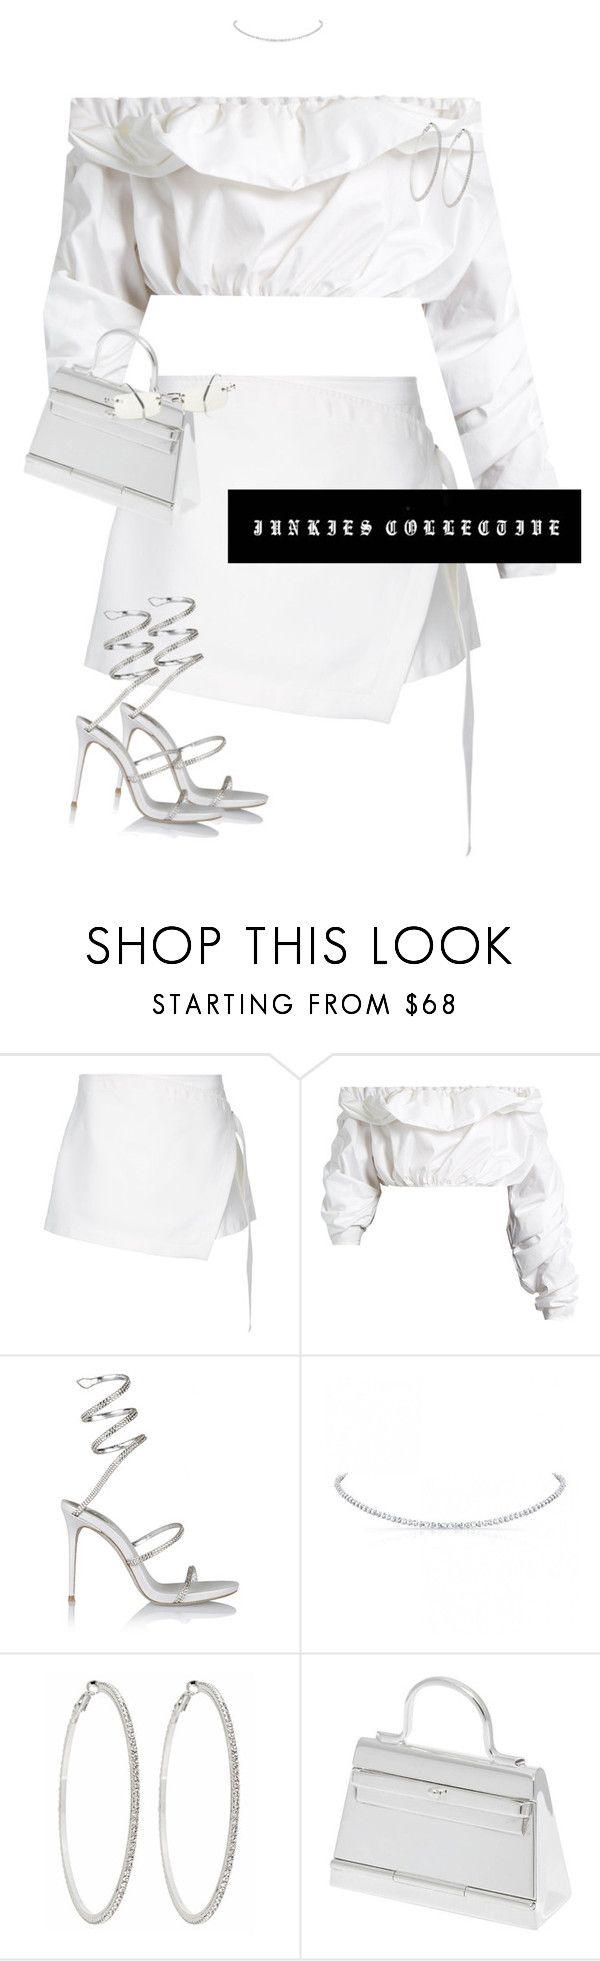 """""""No hook"""" by junkiescollective ❤ liked on Polyvore featuring Dion Lee, E L L E R Y, René Caovilla, Roberta Chiarella, Hermès and Jean-Paul Gaultier"""